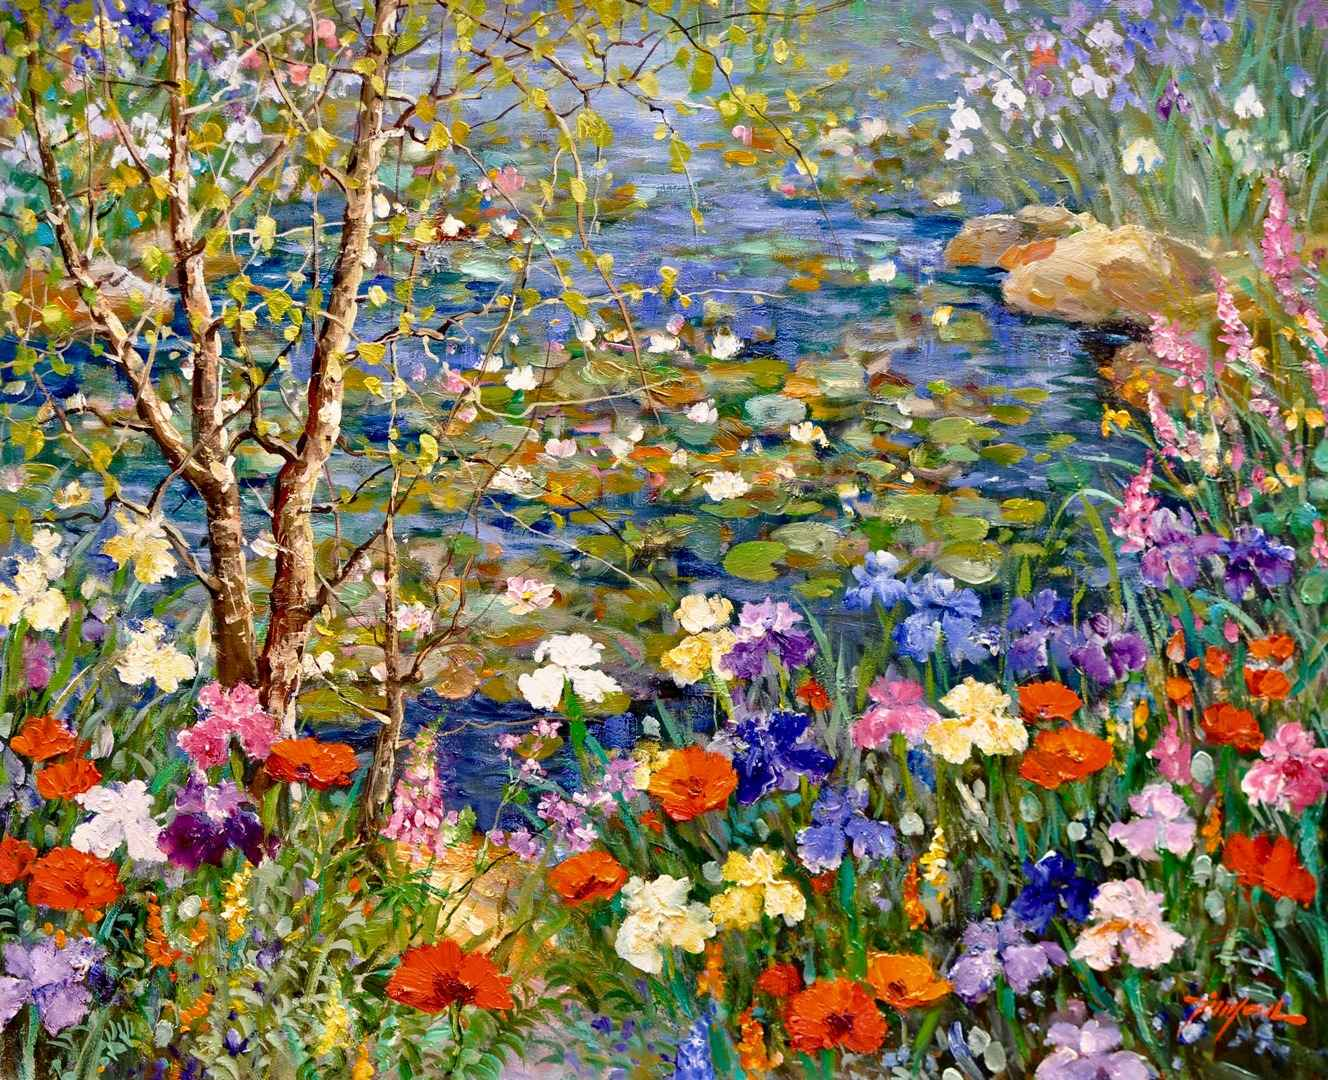 By the Waterlilies Po... by  Tinyan Chan - Masterpiece Online